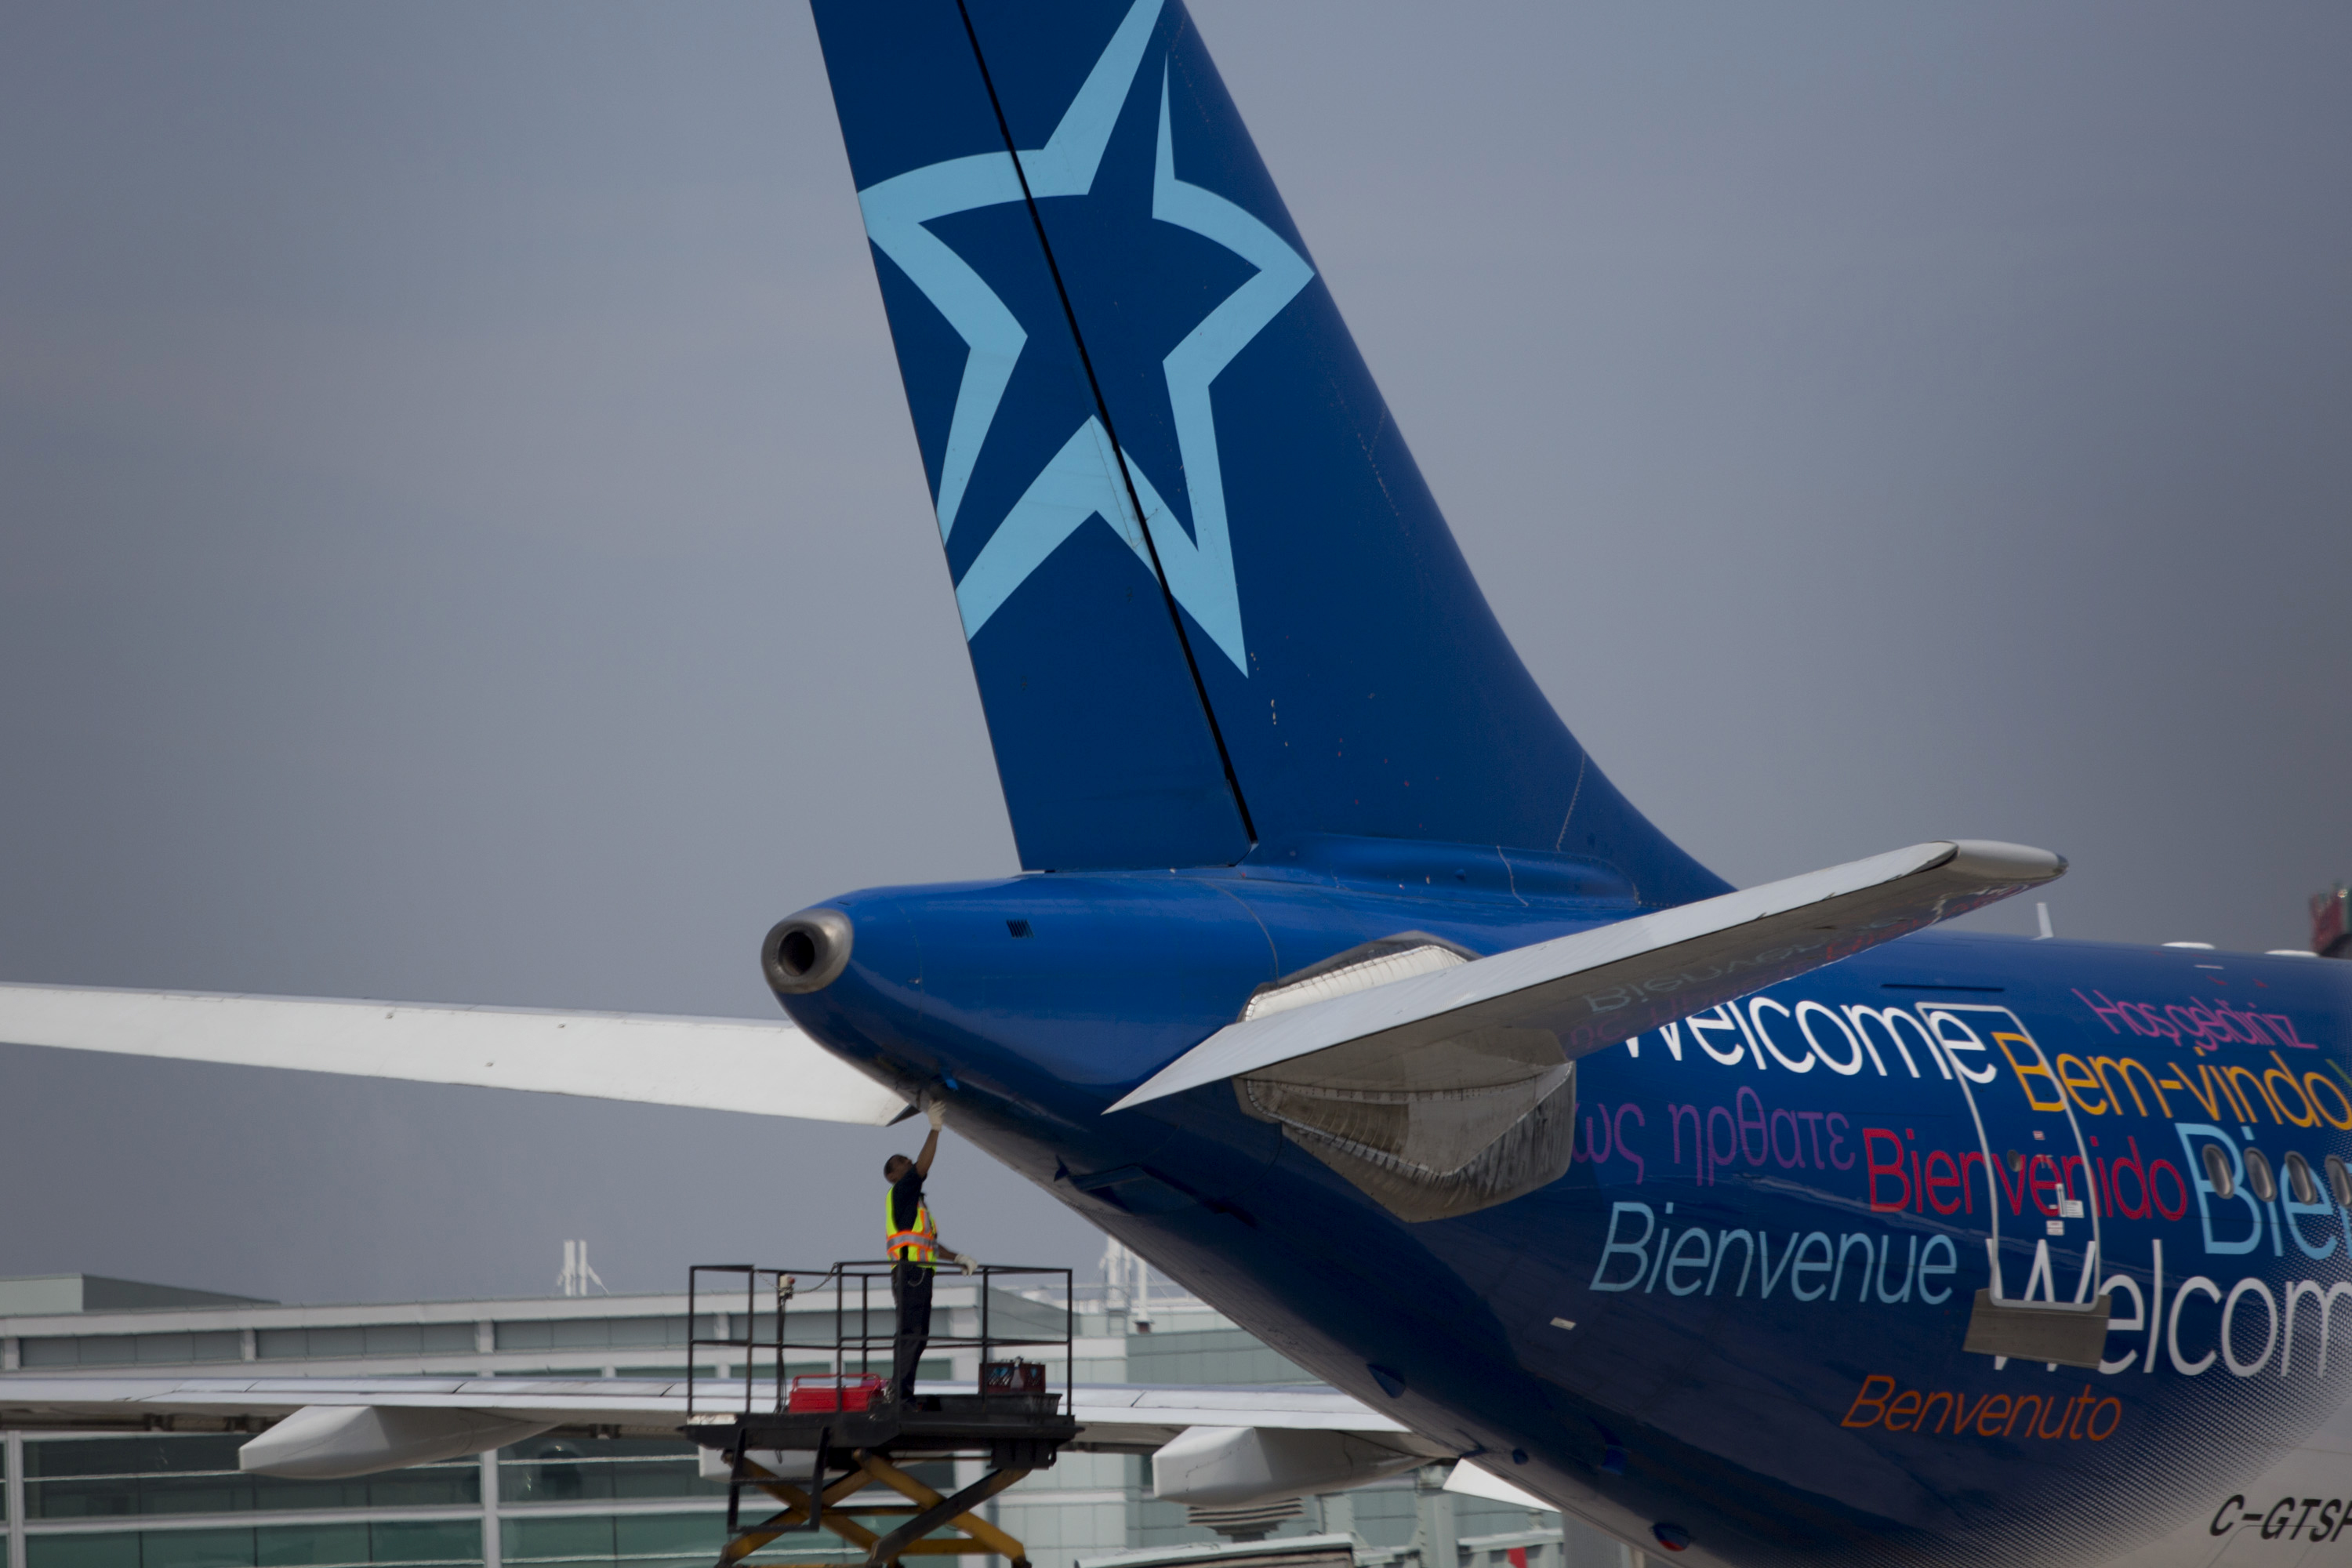 A worker inspects the rear of an Air Transat aircraft at Toronto Pearson International Airport in Toronto, Ontario, Canada, on July 3, 2013.